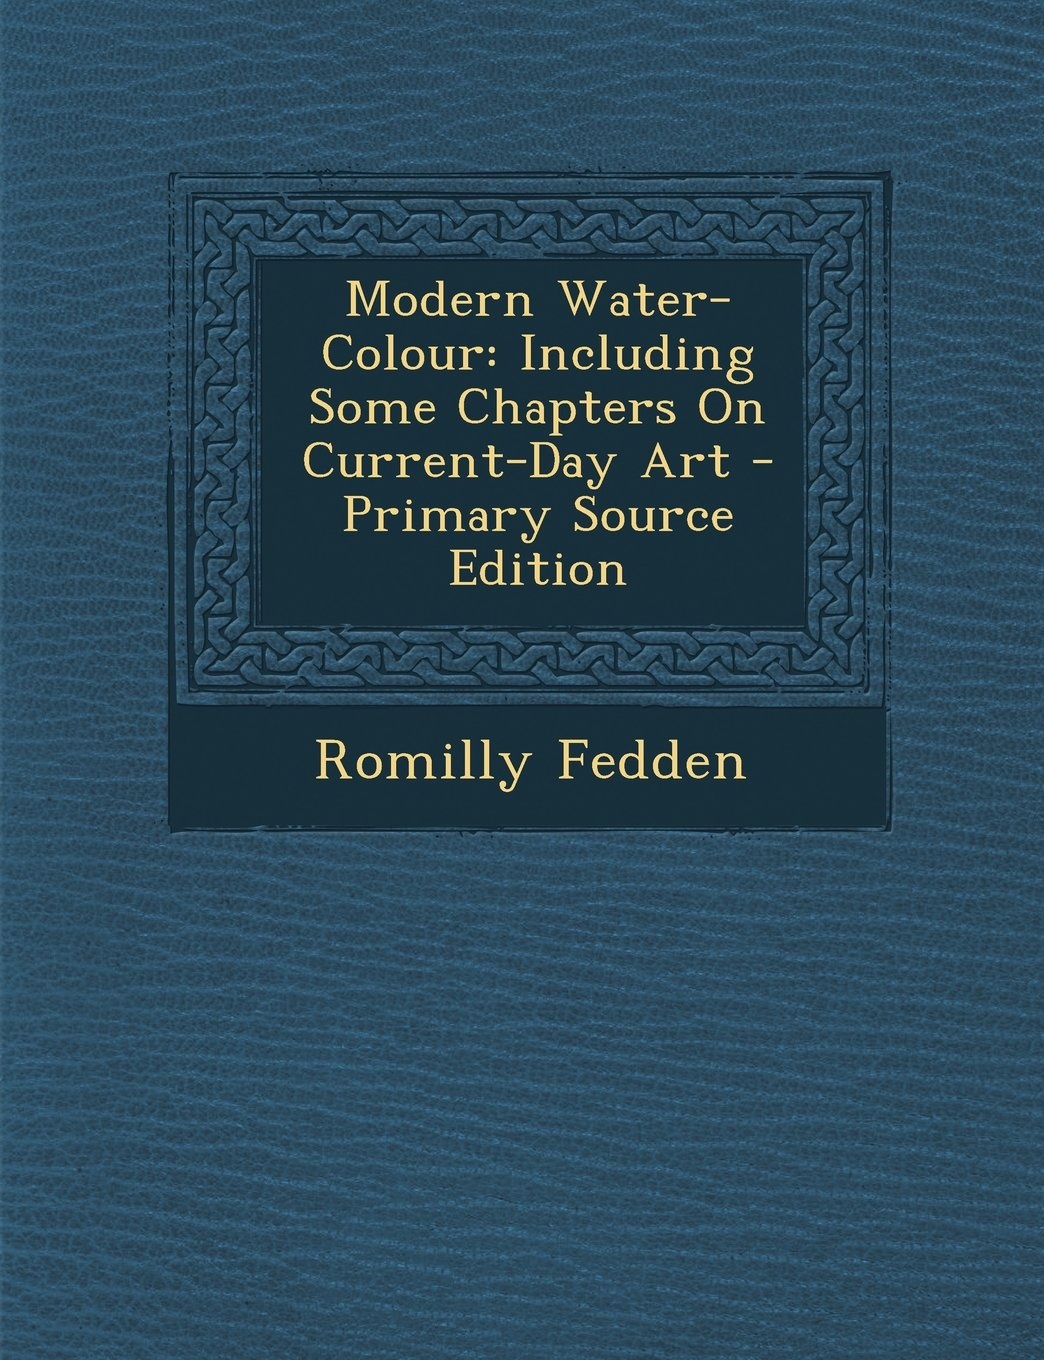 Modern Water-Colour: Including Some Chapters On Current-Day Art - Primary Source Edition ebook